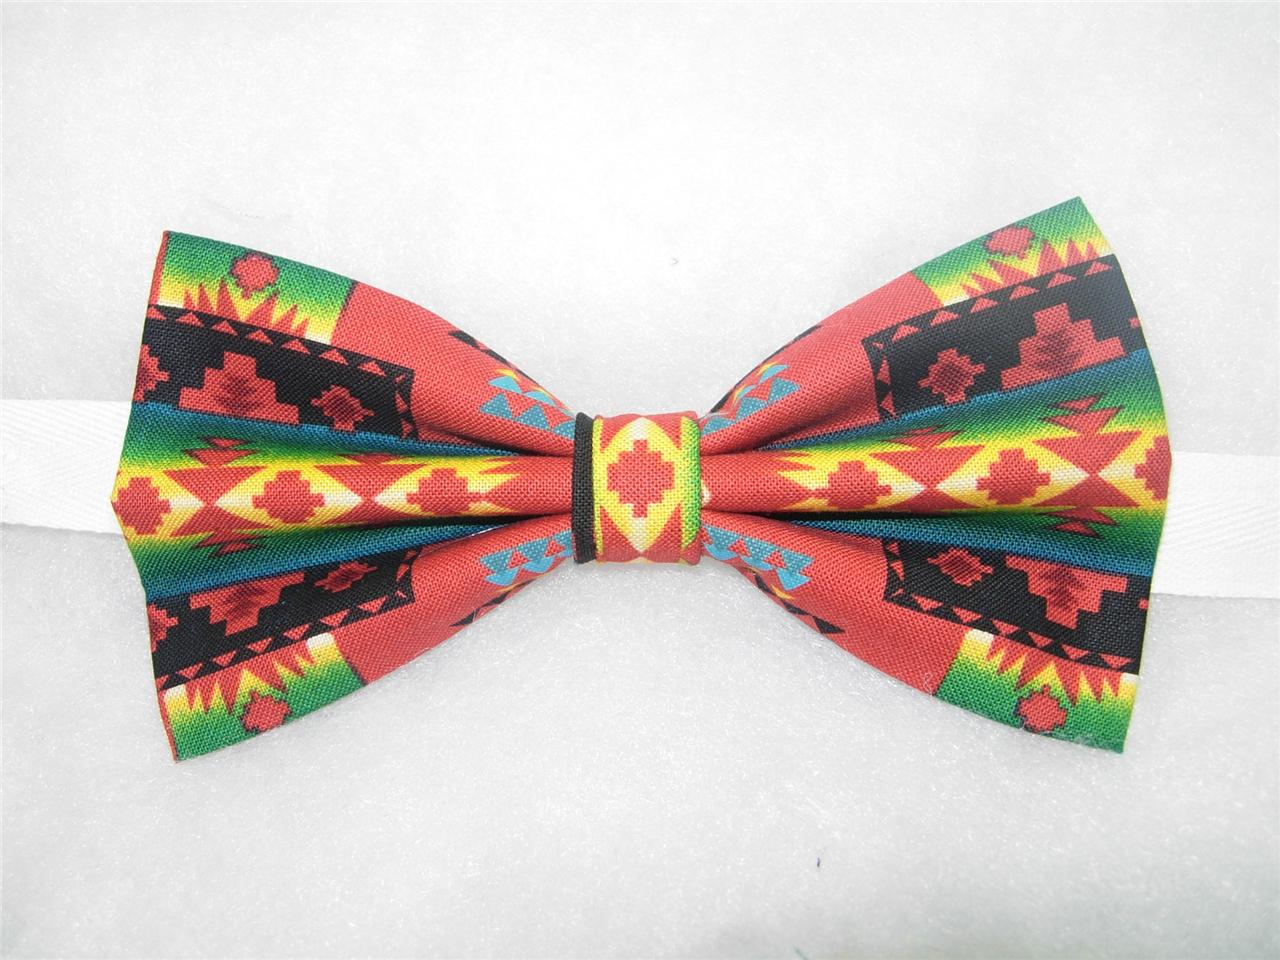 Buy Cute Bow Ties for kids and toddlers boys online in India at best prices. Wide selection of baby boys bow ties at getson.ga Find the perfect bow tie for birthday parties and any special occasions.5/5(7).